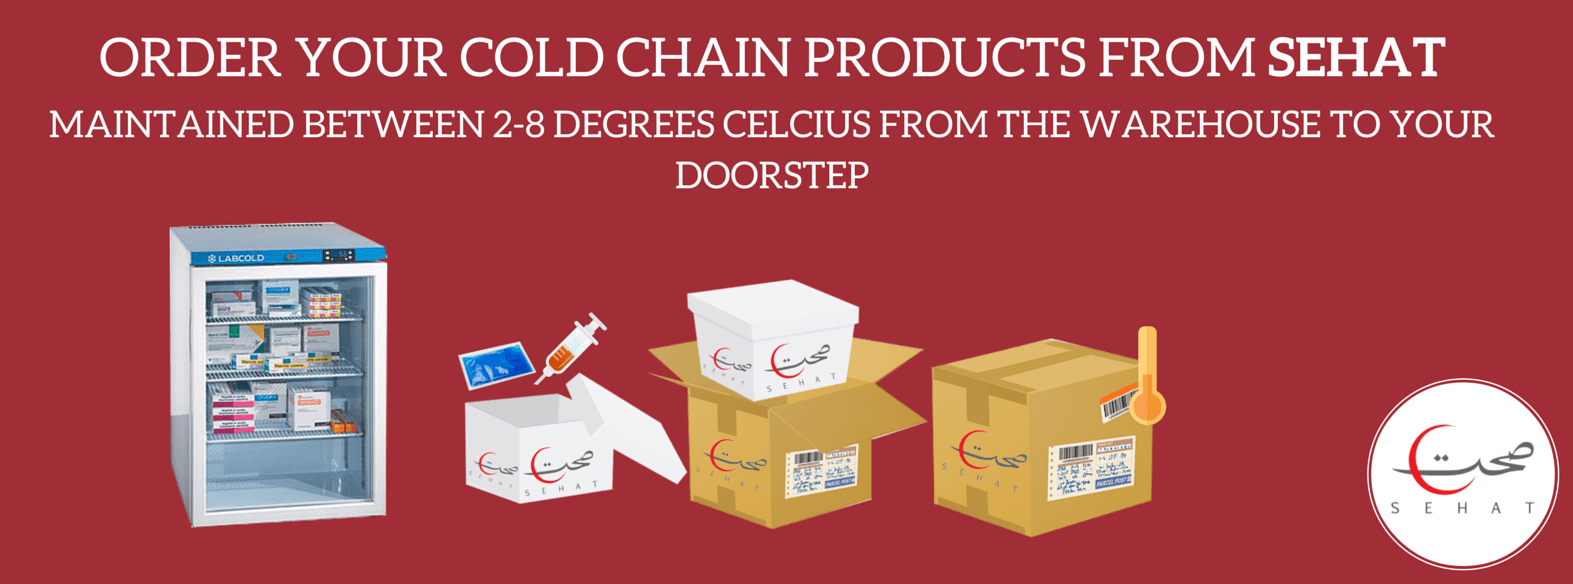 Cold-Chain-Orders